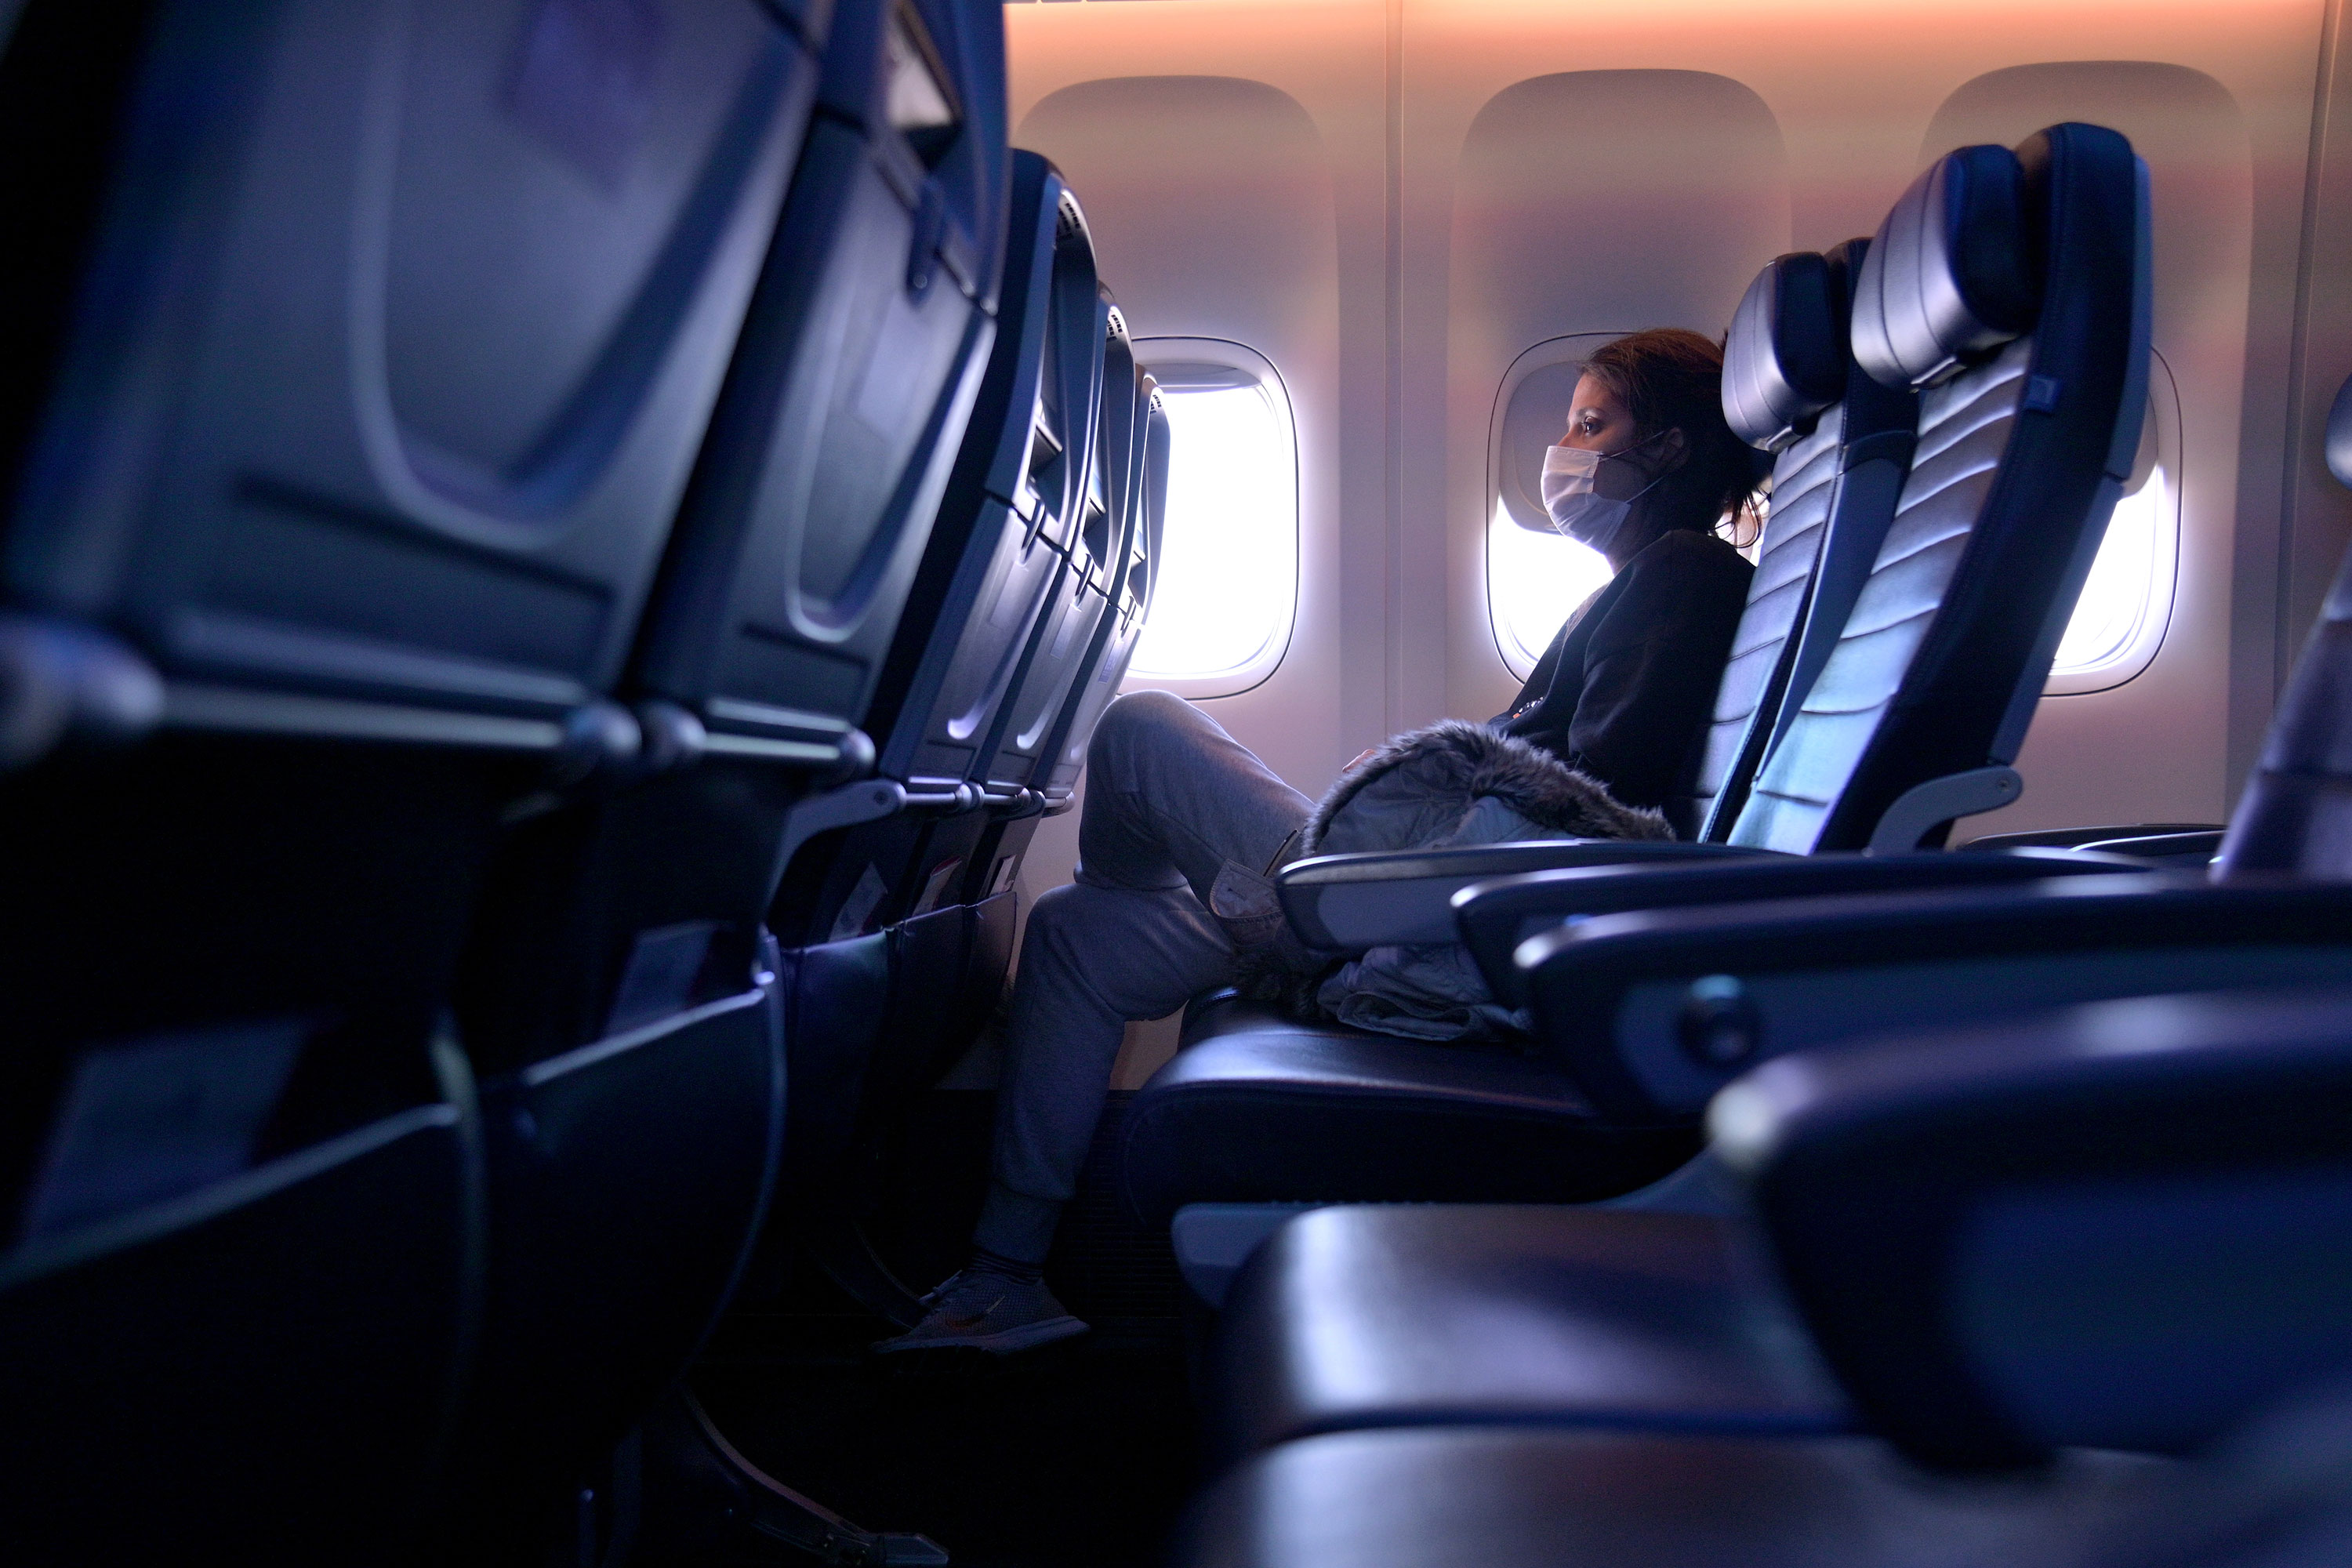 Keeping middle seats vacant on airplanes can reduce risk of Covid-19 exposure by up to 57%, CDC study says